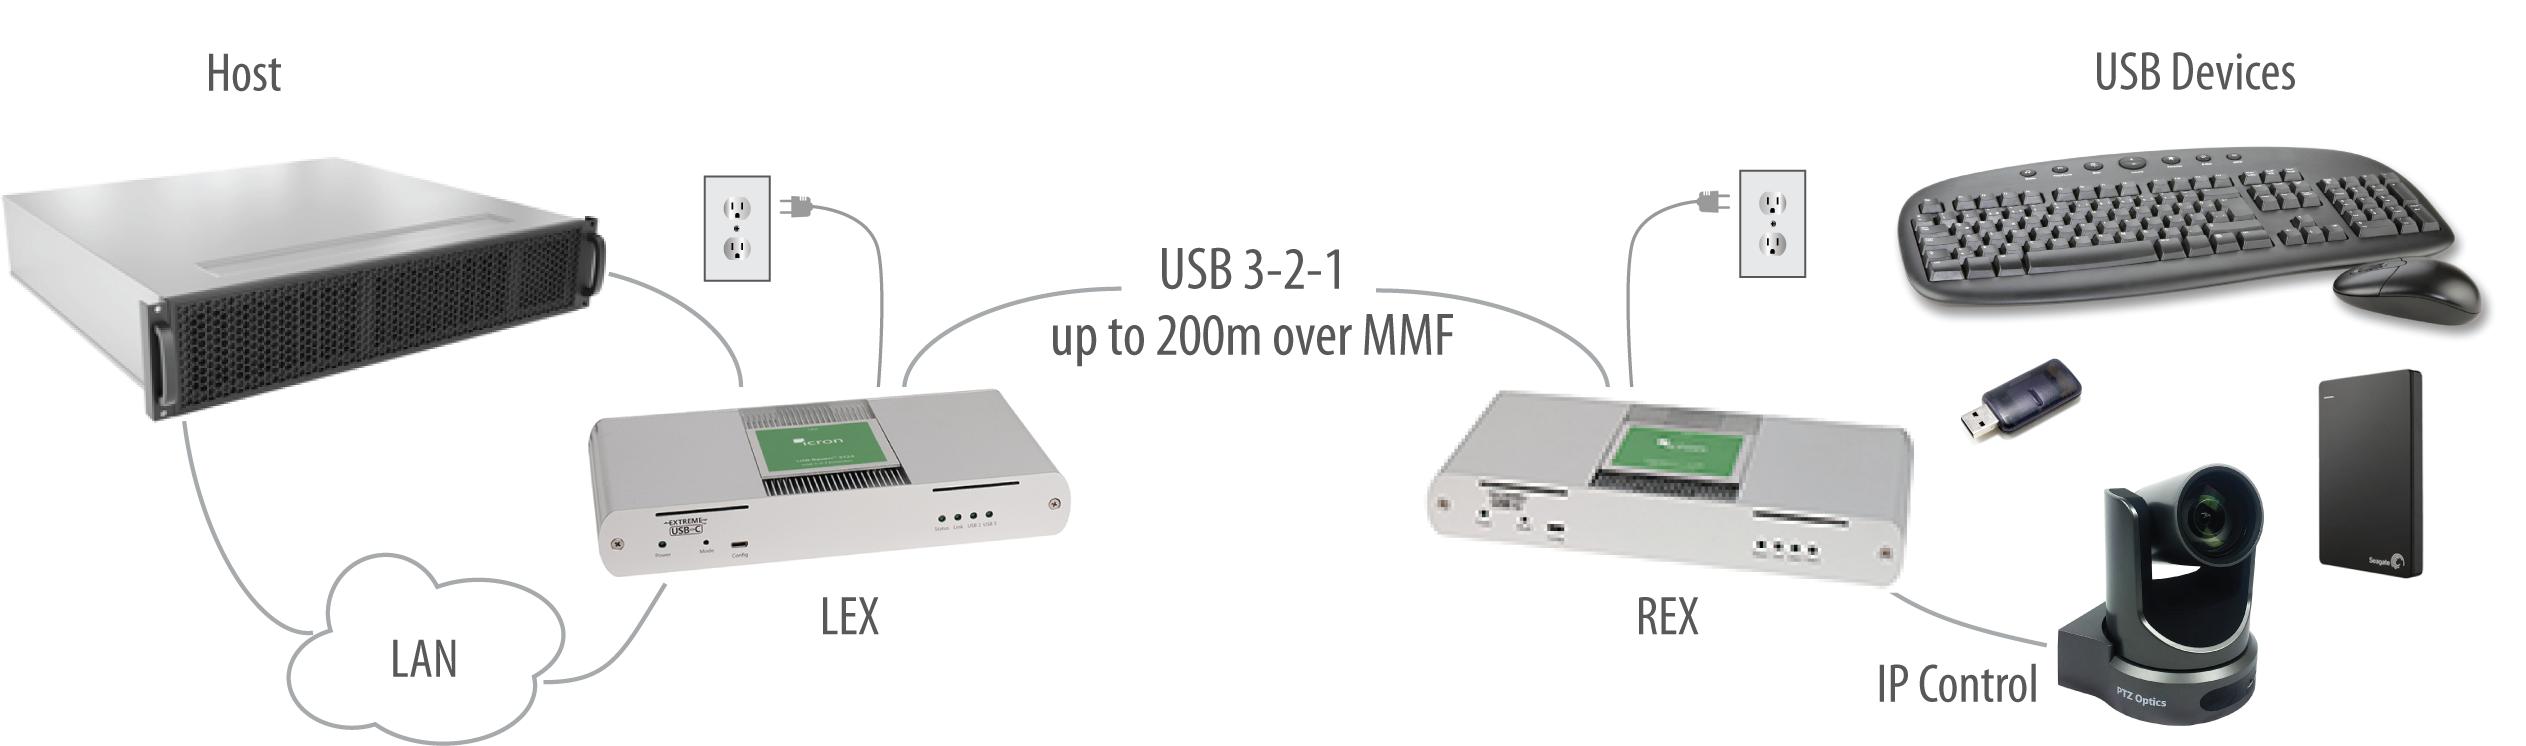 Icron USB 3-2-1 Raven 3124 200m MMF Fiber Point-to-Point Extender System Application Diagram